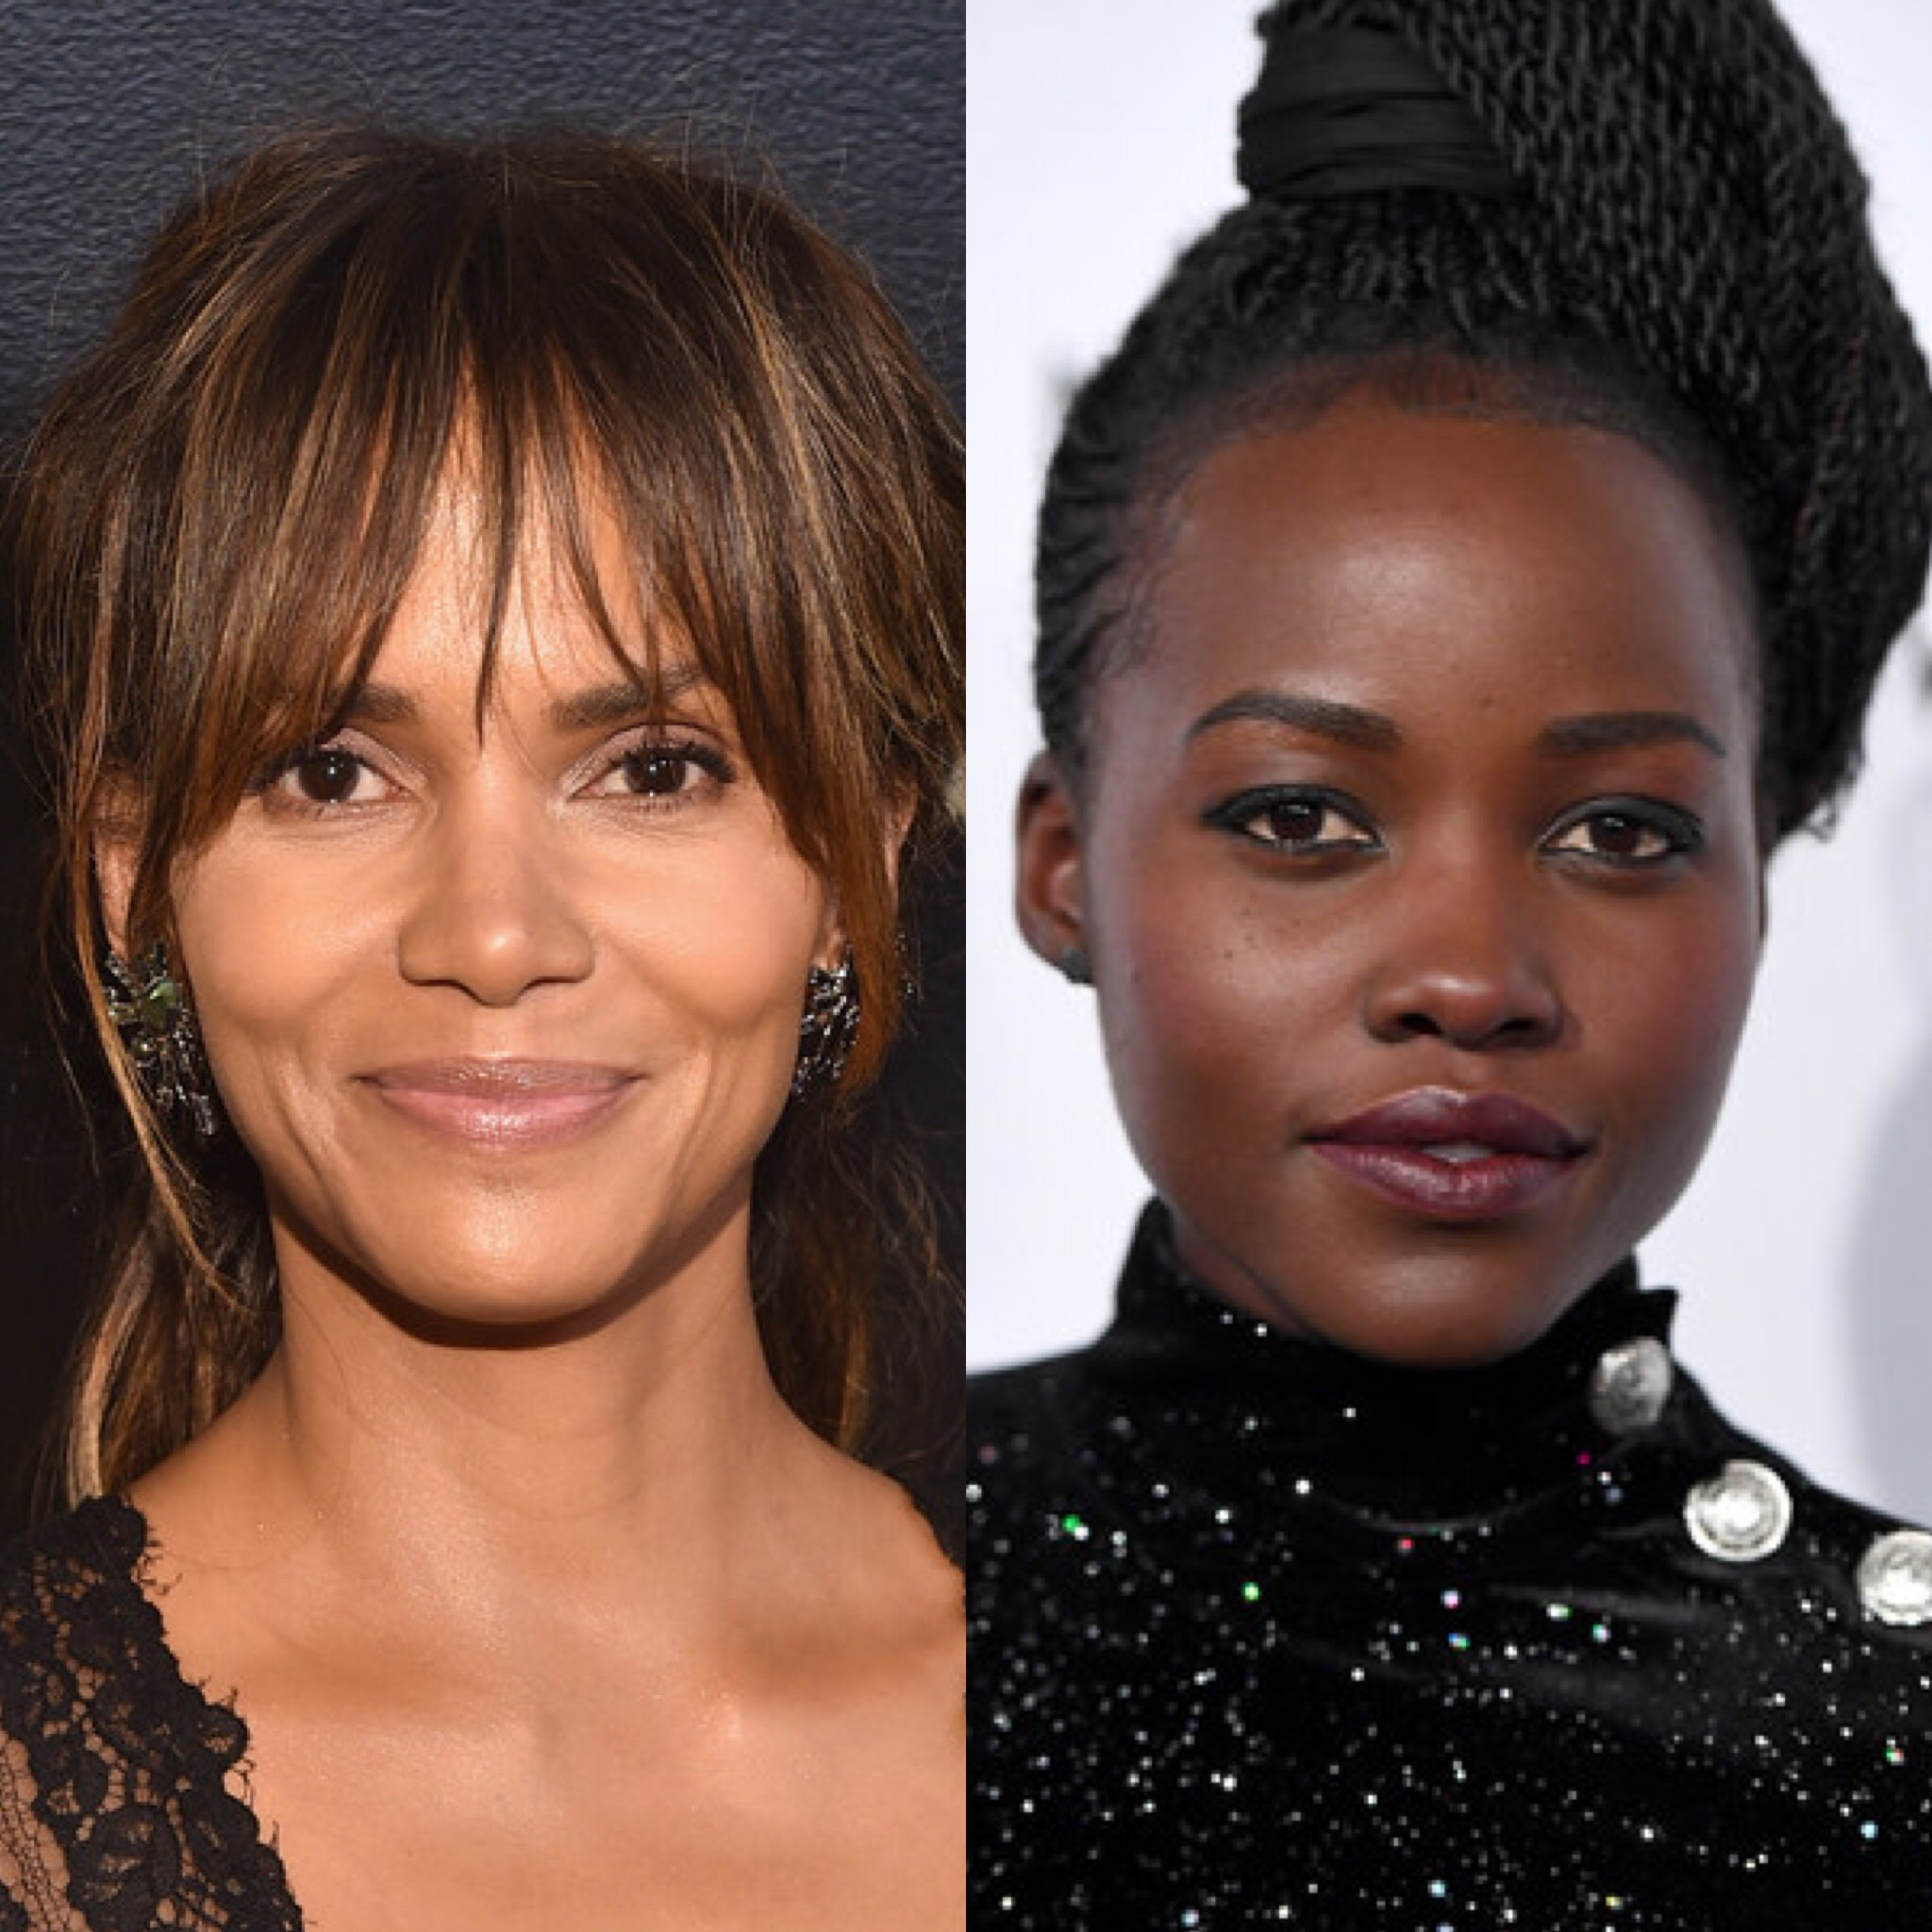 Actor Halle Berry attends Amazon Studios' Golden Globes Celebration at The Beverly Hilton Hotel on January 7, 2018 in Beverly Hills, California; Actor Lupita Nyong'o attends the The National Board Of Review Annual Awards Gala at Cipriani 42nd Street on January 9, 2018 in New York City.